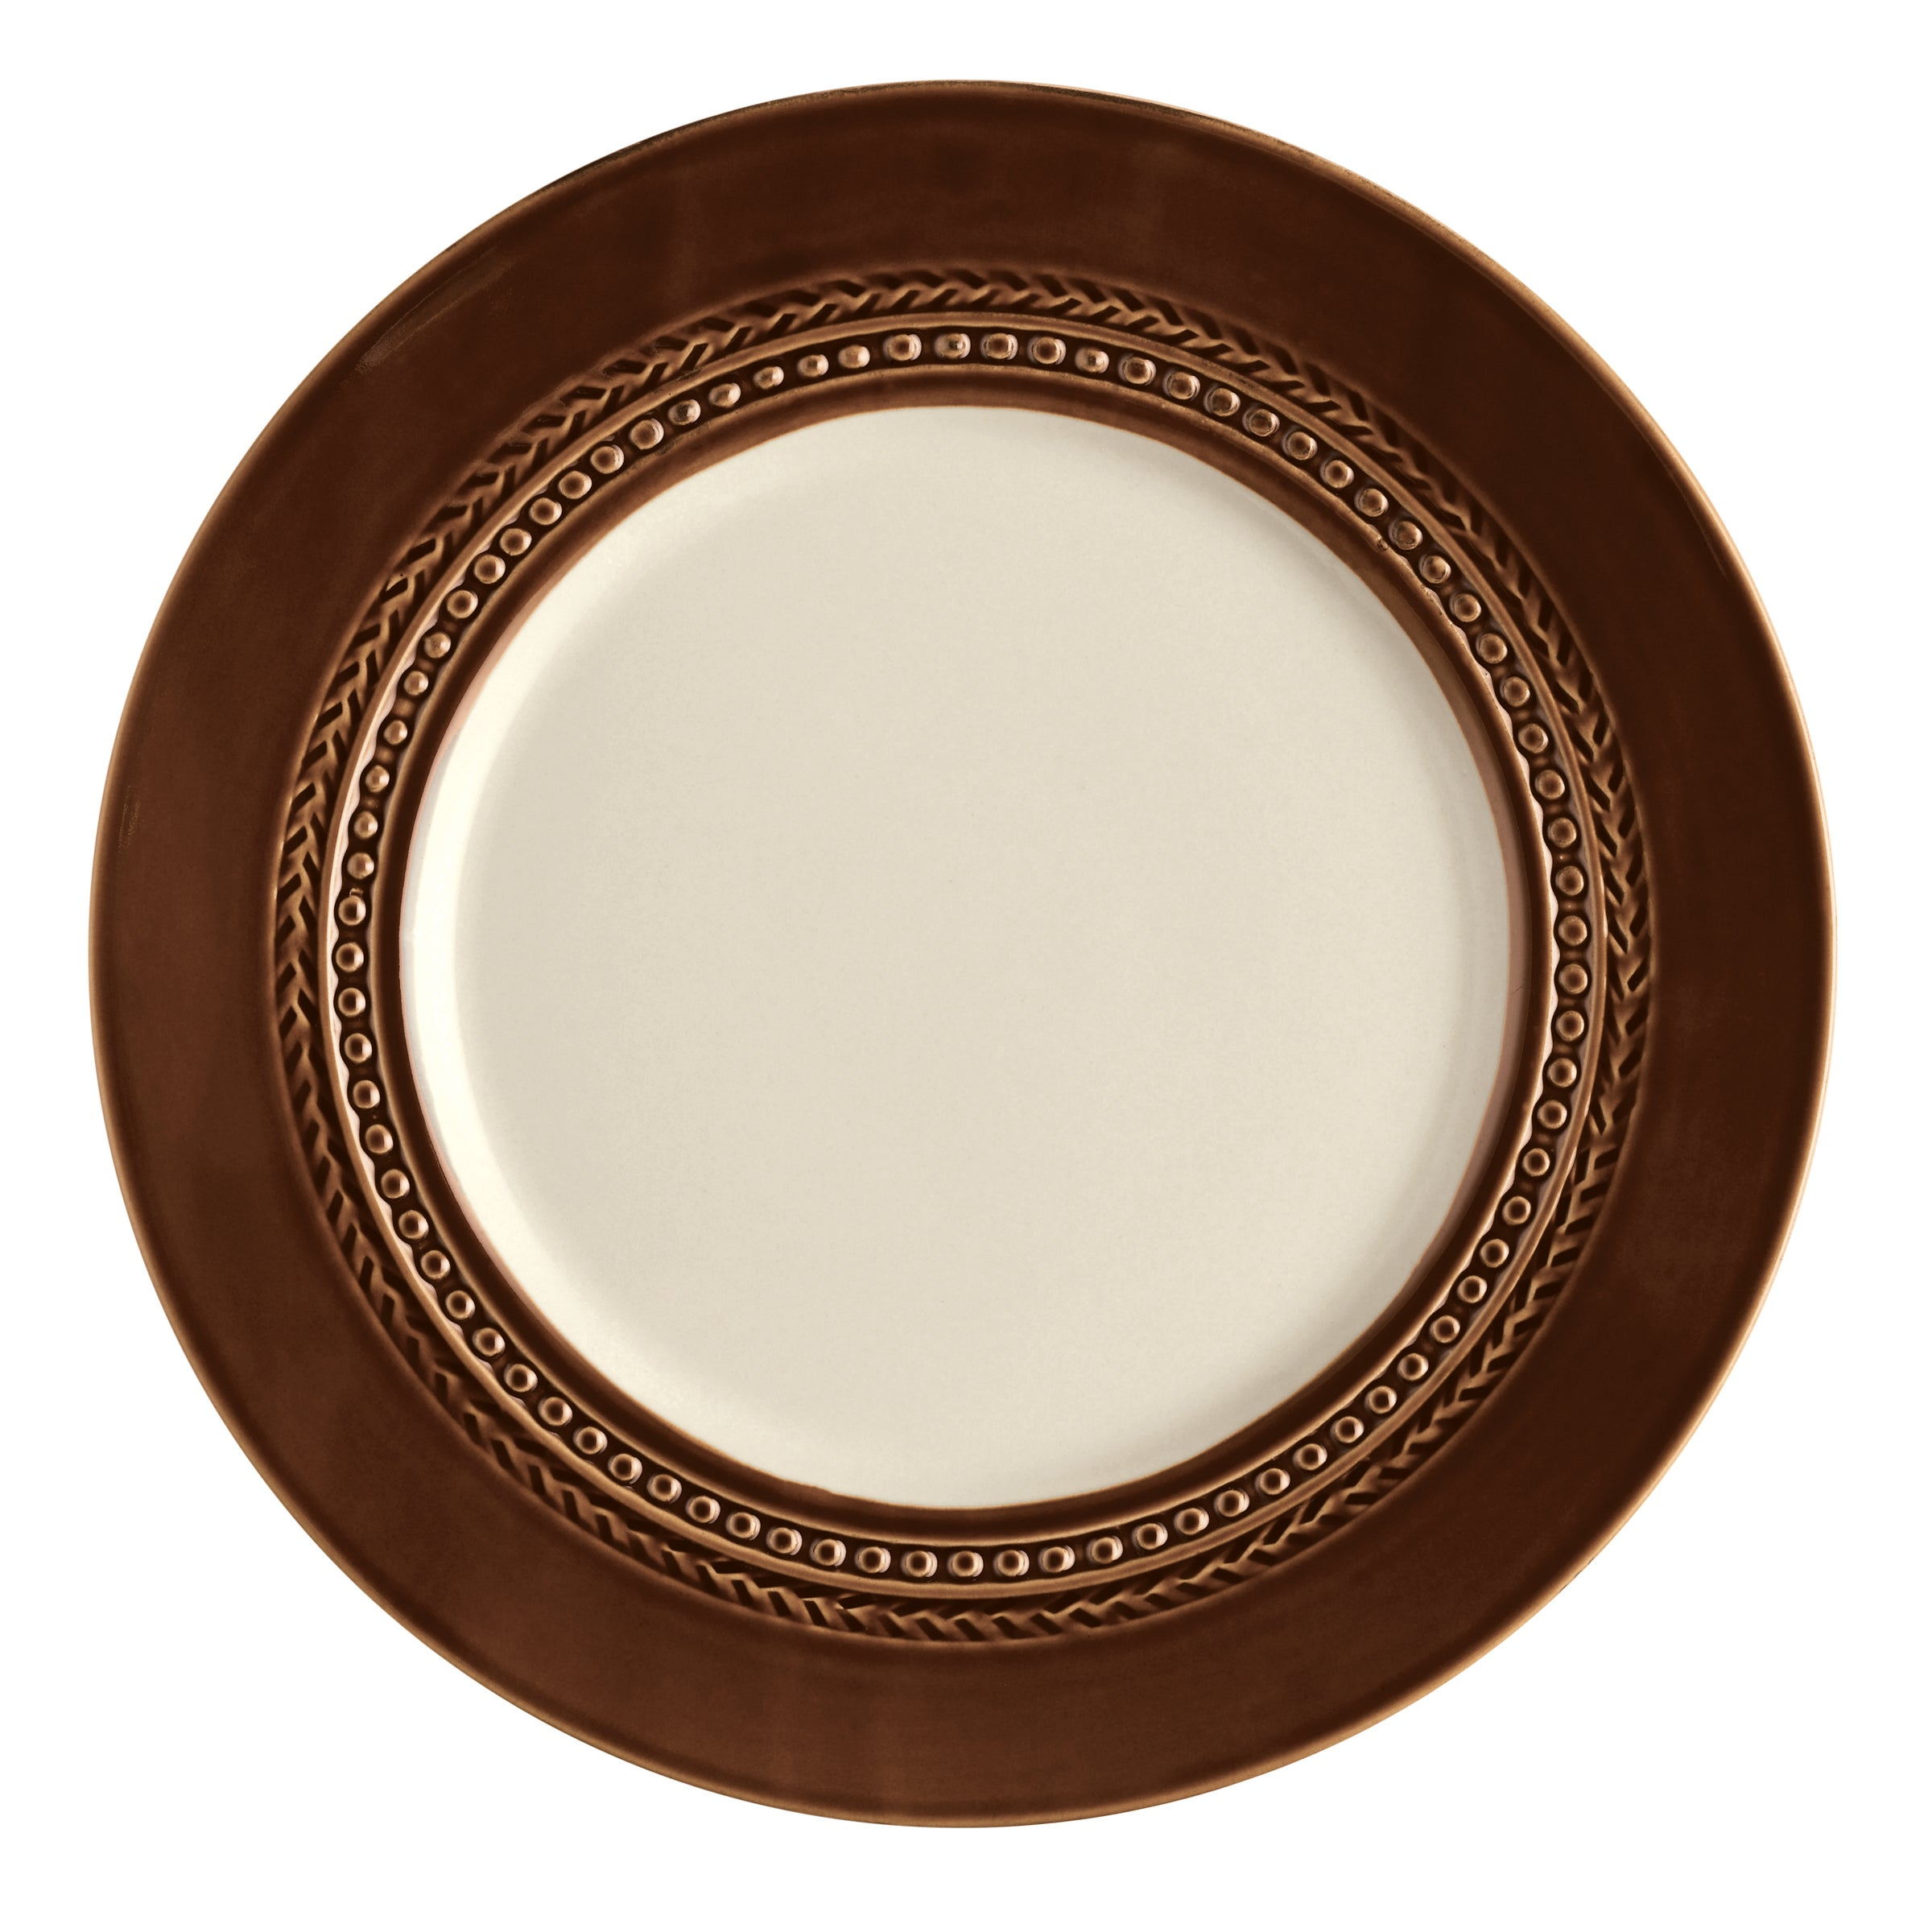 Paula Deen Dinnerware 4-piece Dinner Plate Set-Southern Gathering Chestnut 11-inch - Free Shipping On Orders Over $45 - Overstock - 14916667  sc 1 st  Overstock & Paula Deen Dinnerware 4-piece Dinner Plate Set-Southern Gathering ...